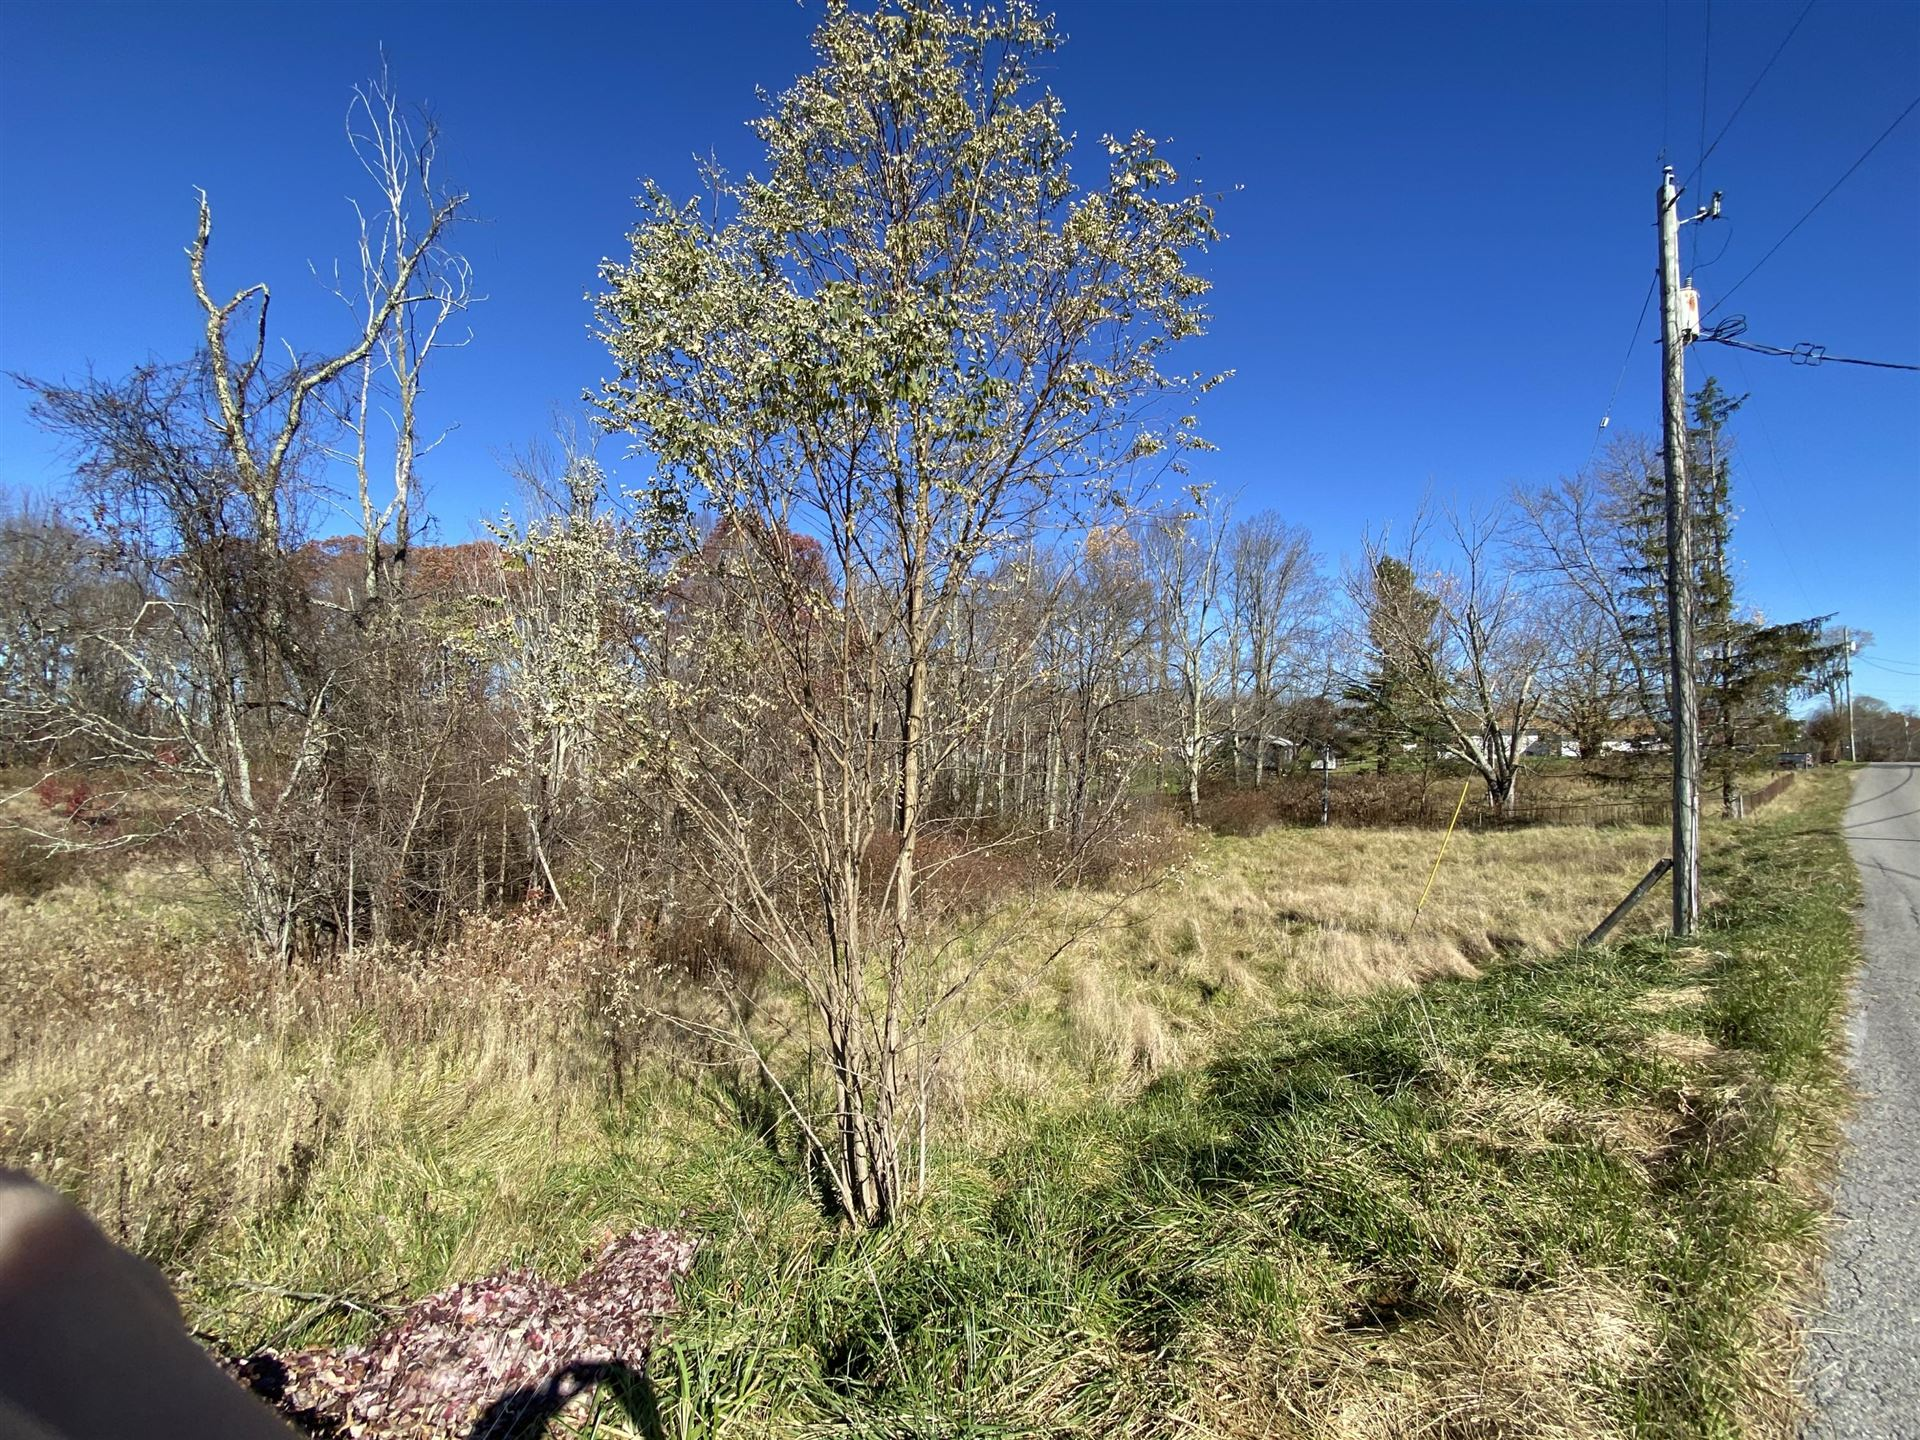 Photo of Tbd Mountain View Rd., Wise, VA 24293 (MLS # 9915315)